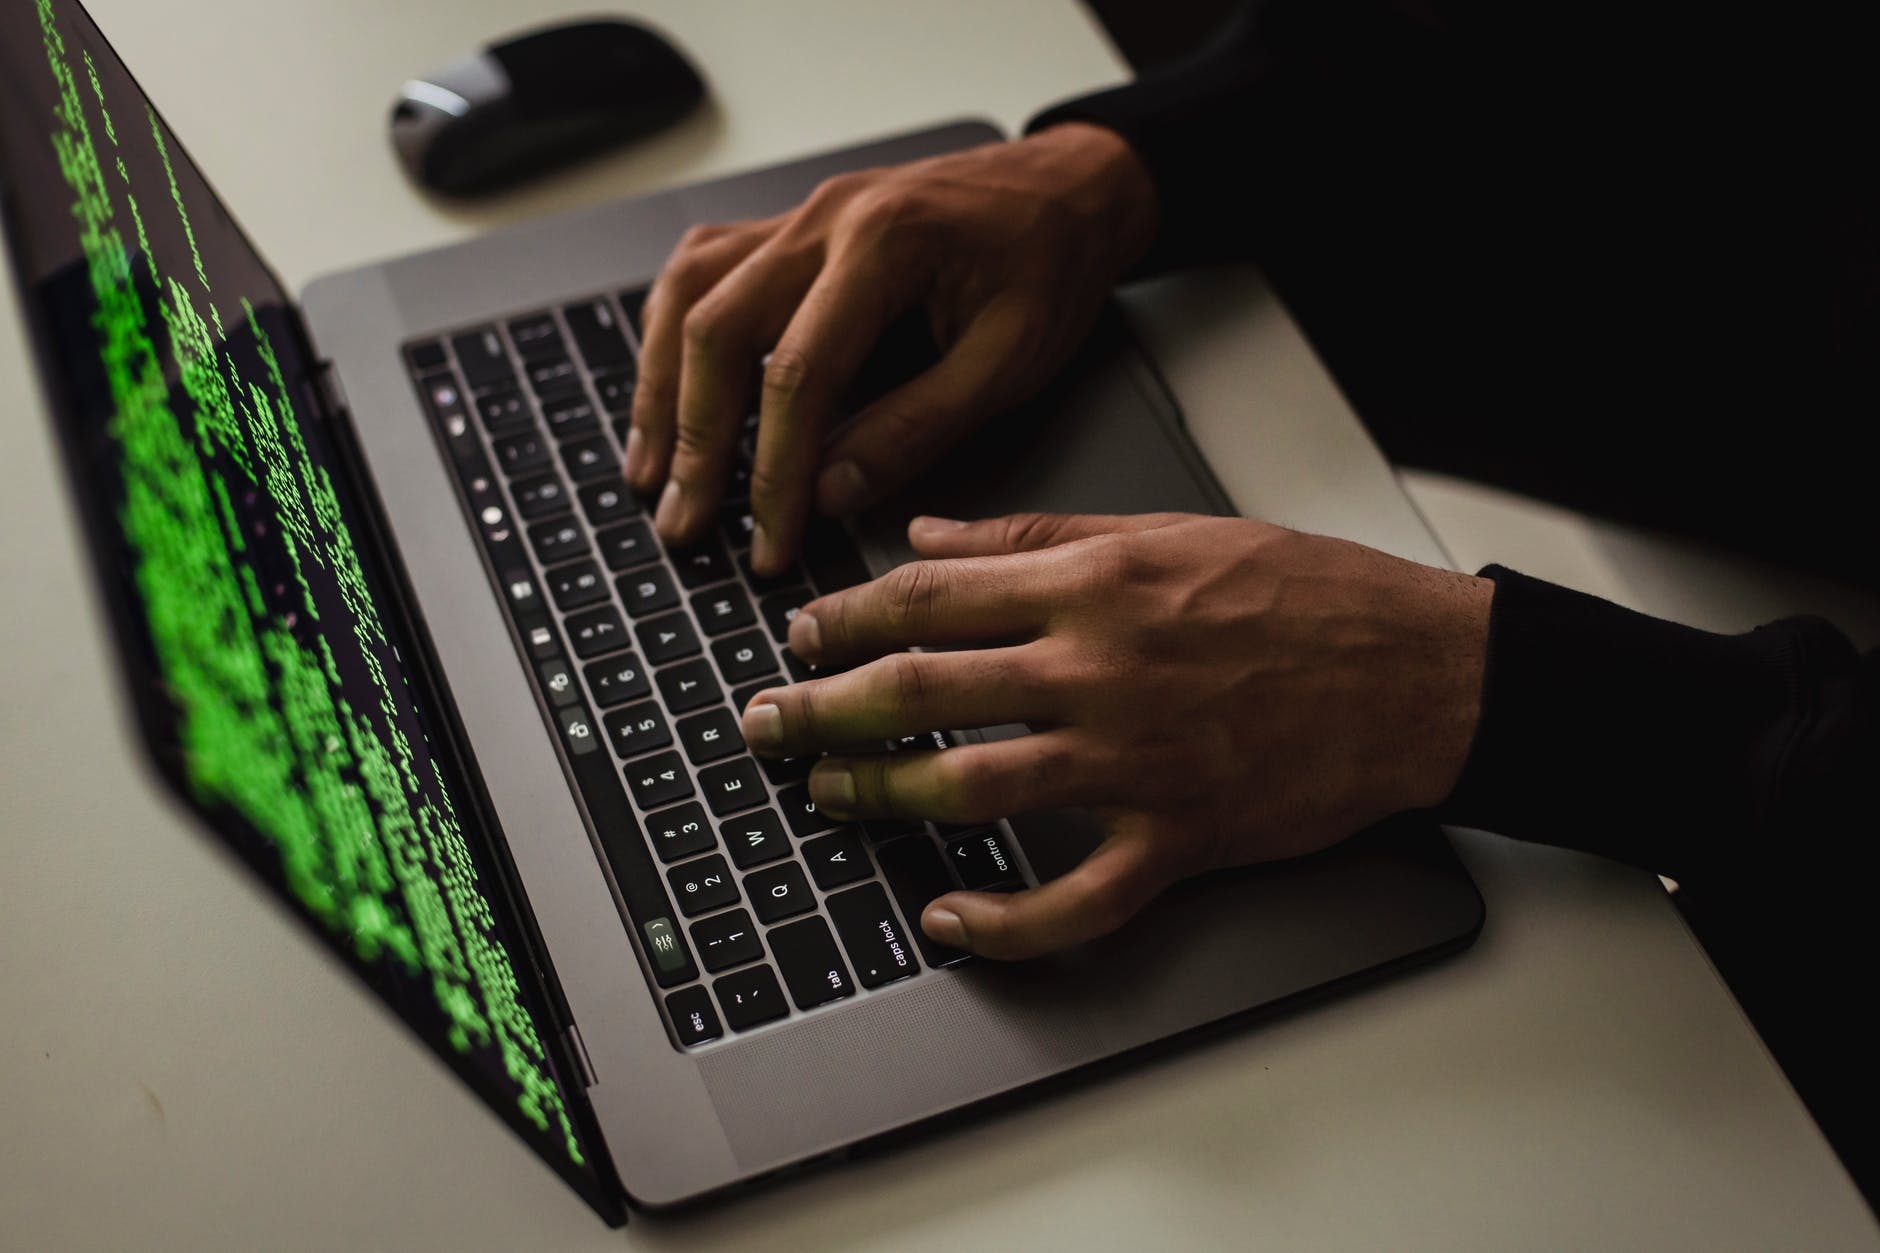 crop cyber spy hacking system while typing on laptop